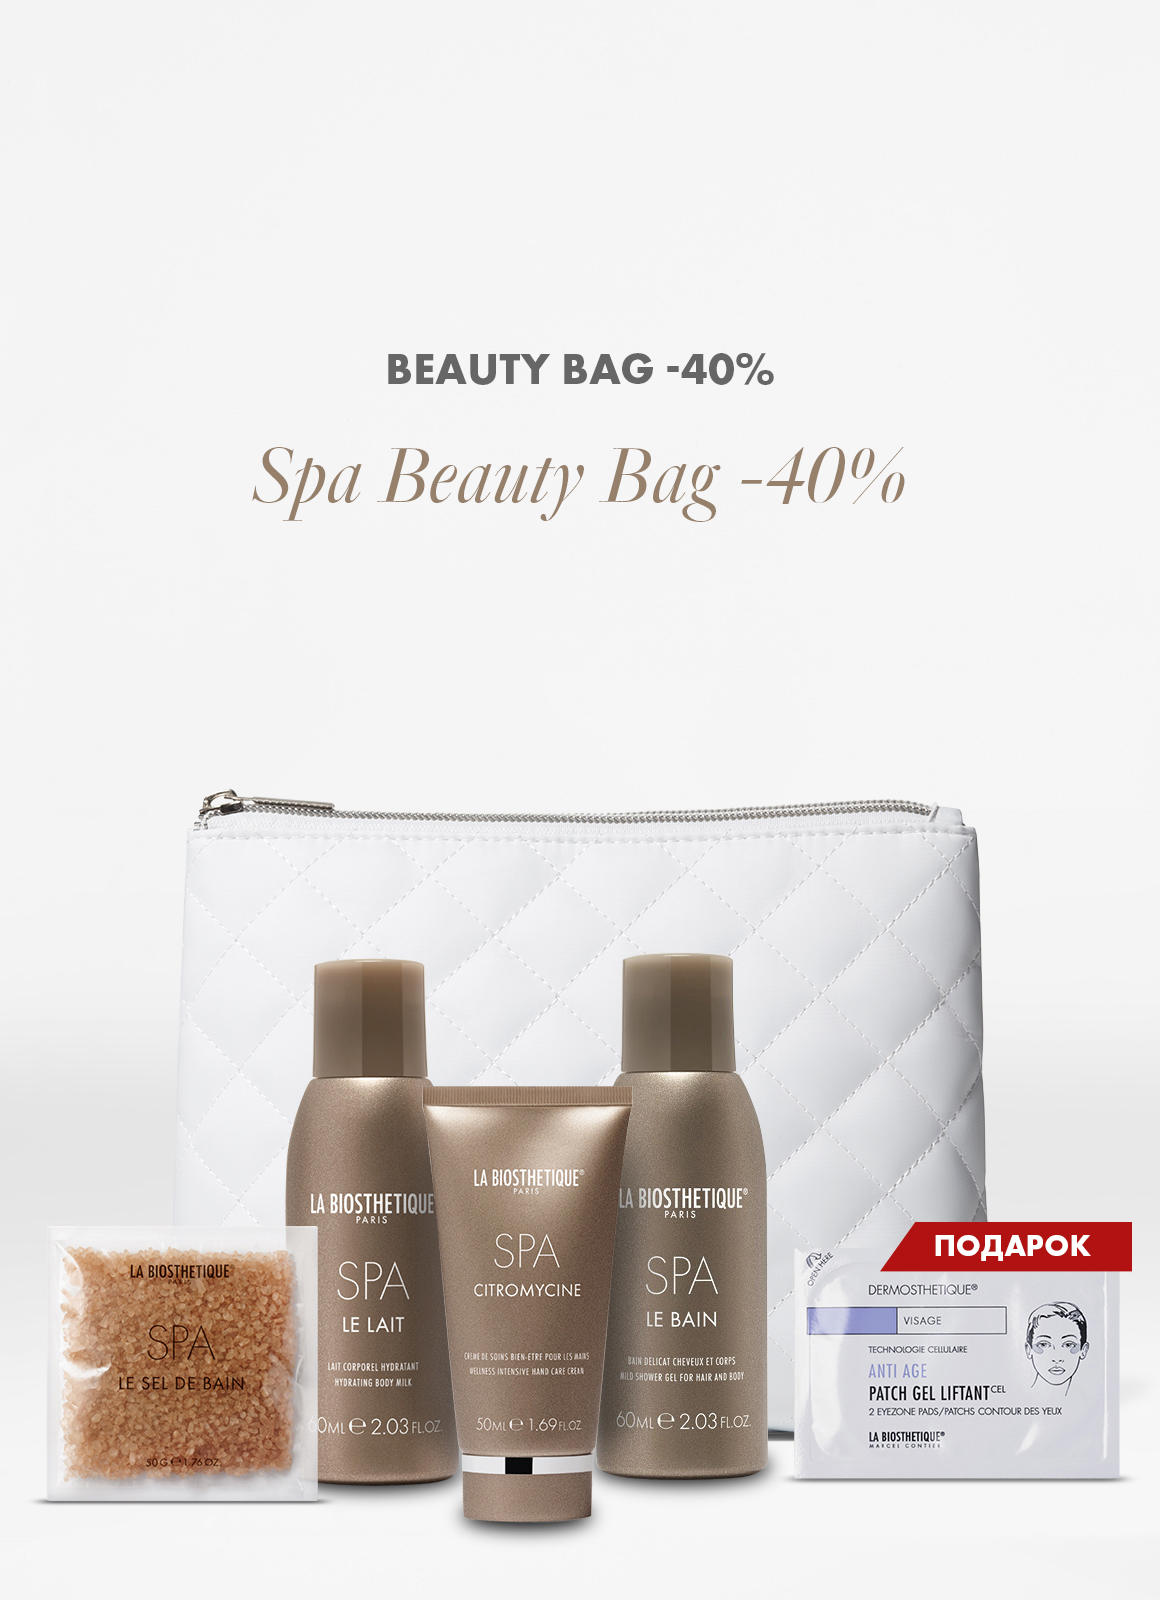 SPA-программа по уходу за телом: 4 средства + патч в подарок Spa beauty bag La Biosthetique